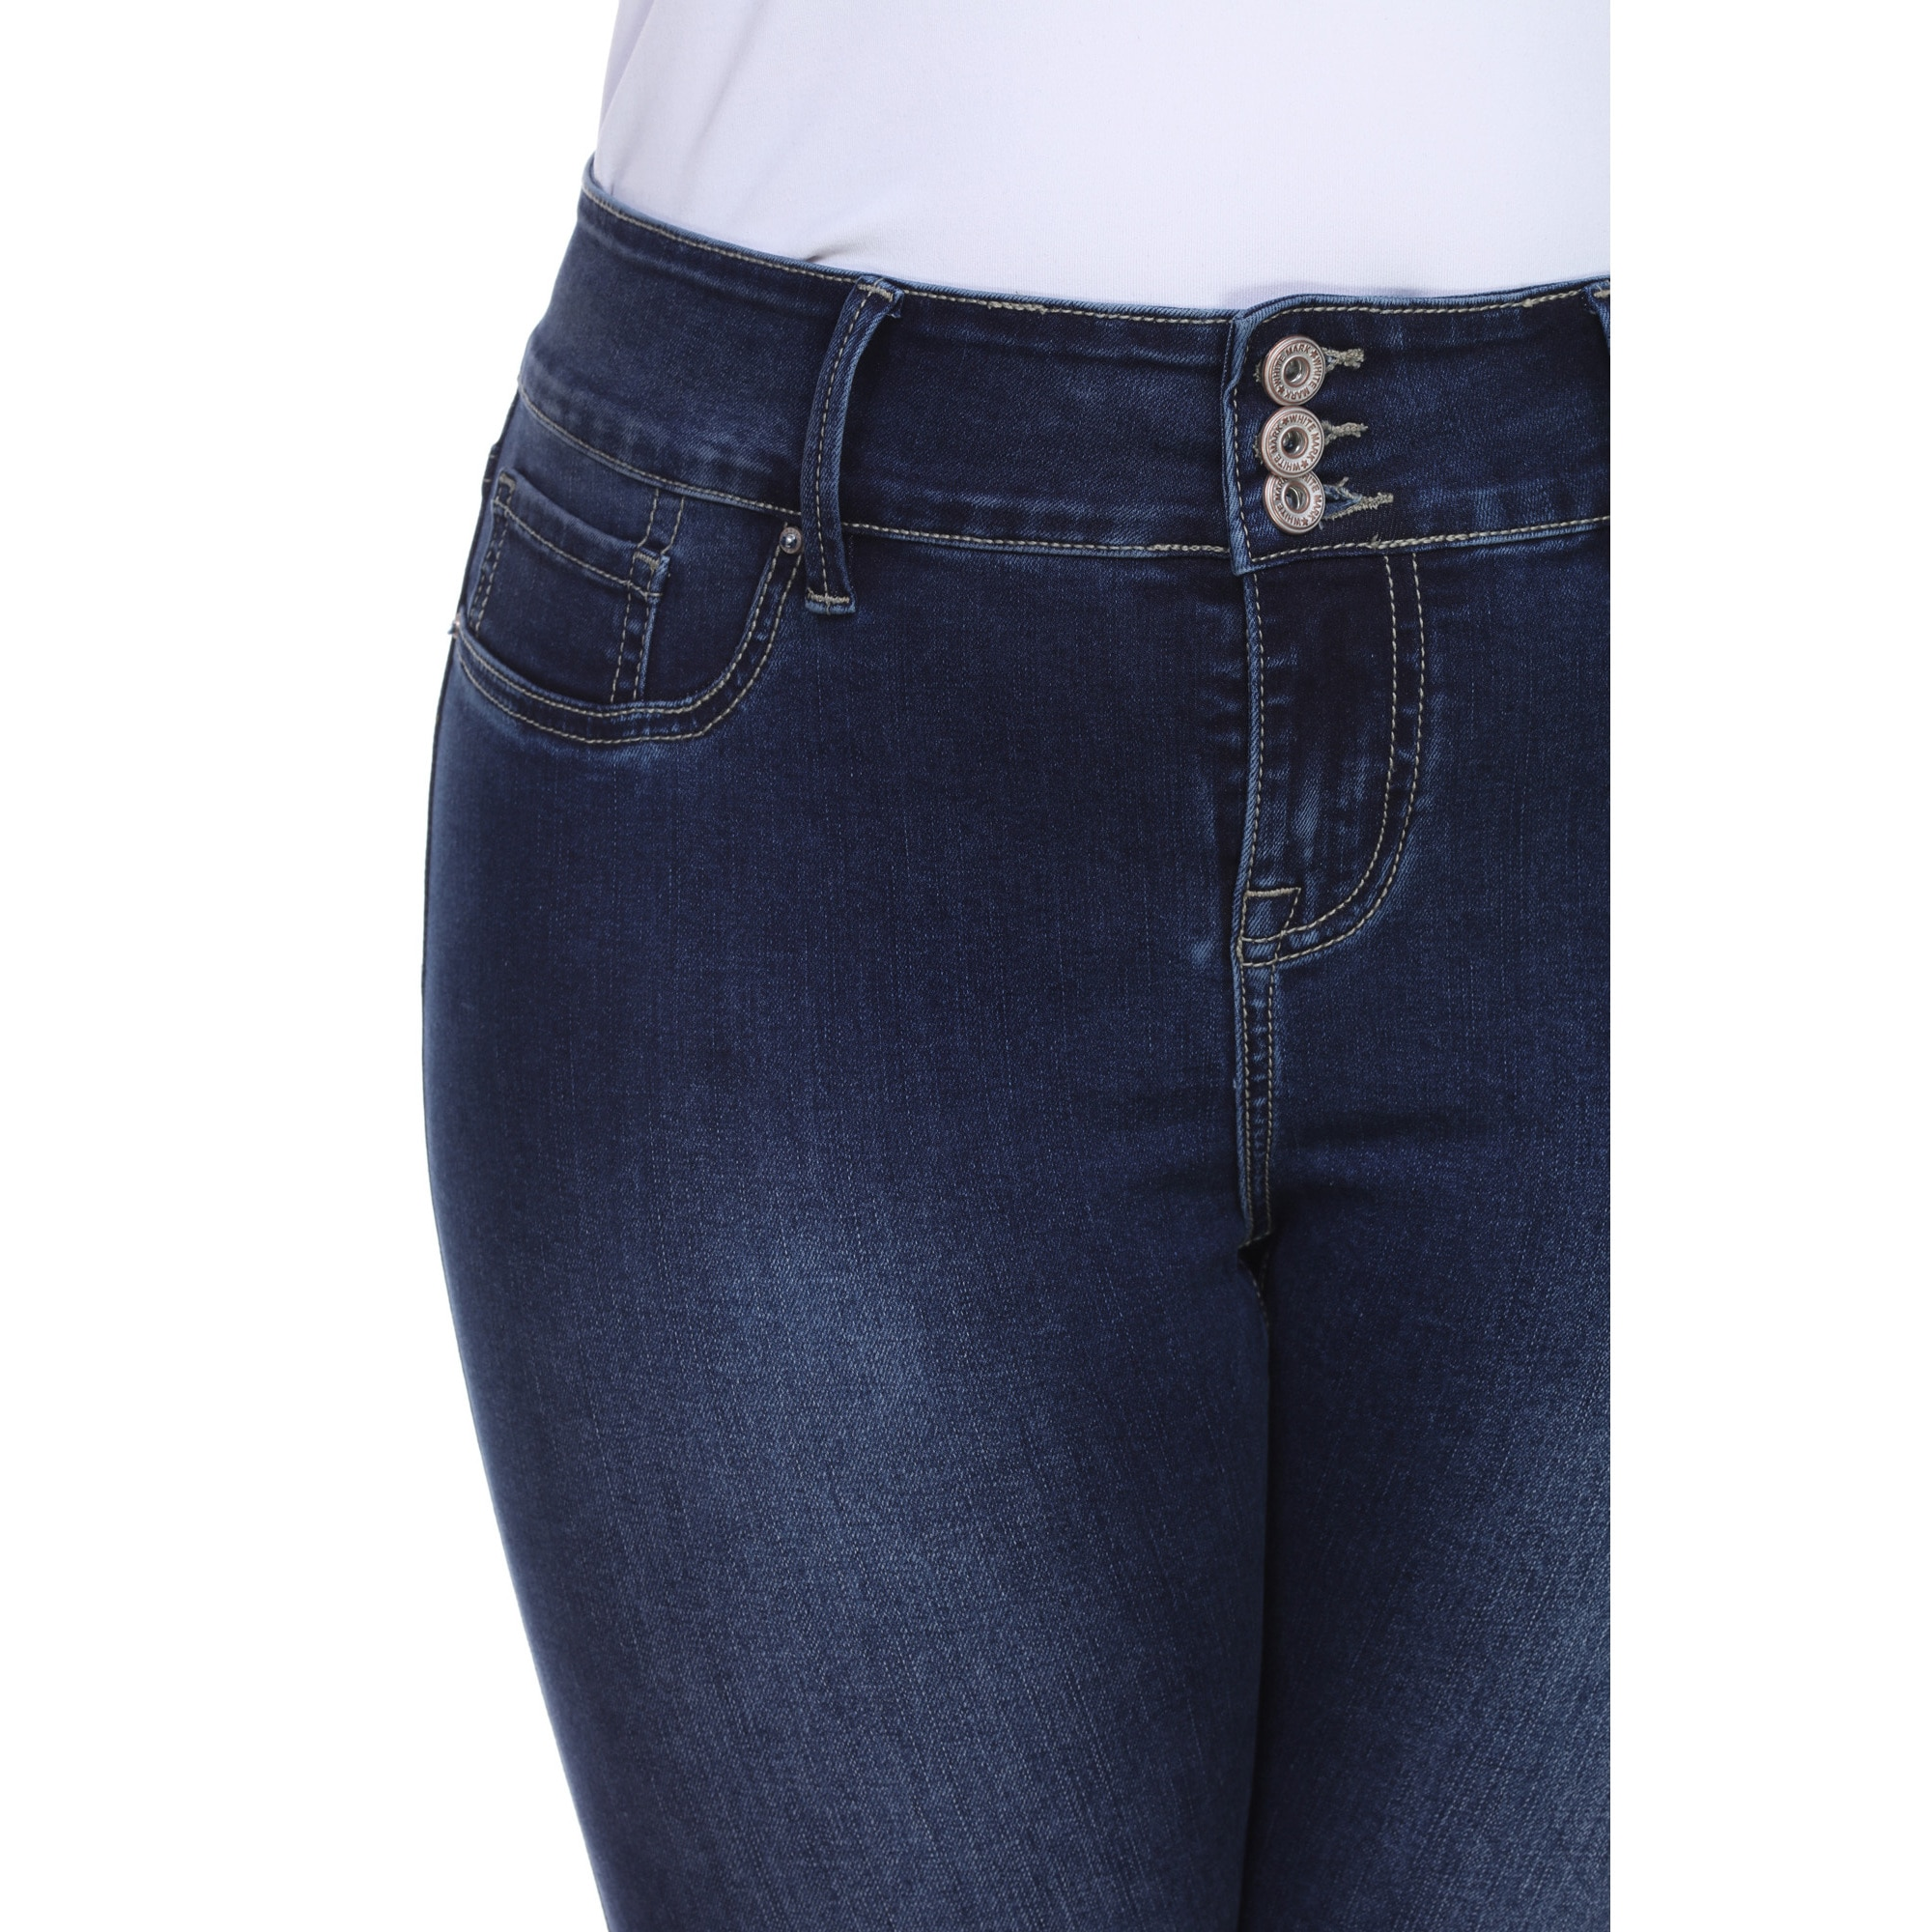 77f8fec30c0 Shop White Mark Women s Plus Size Super Stretch Denim Jean - On Sale - Free  Shipping Today - Overstock - 12070434